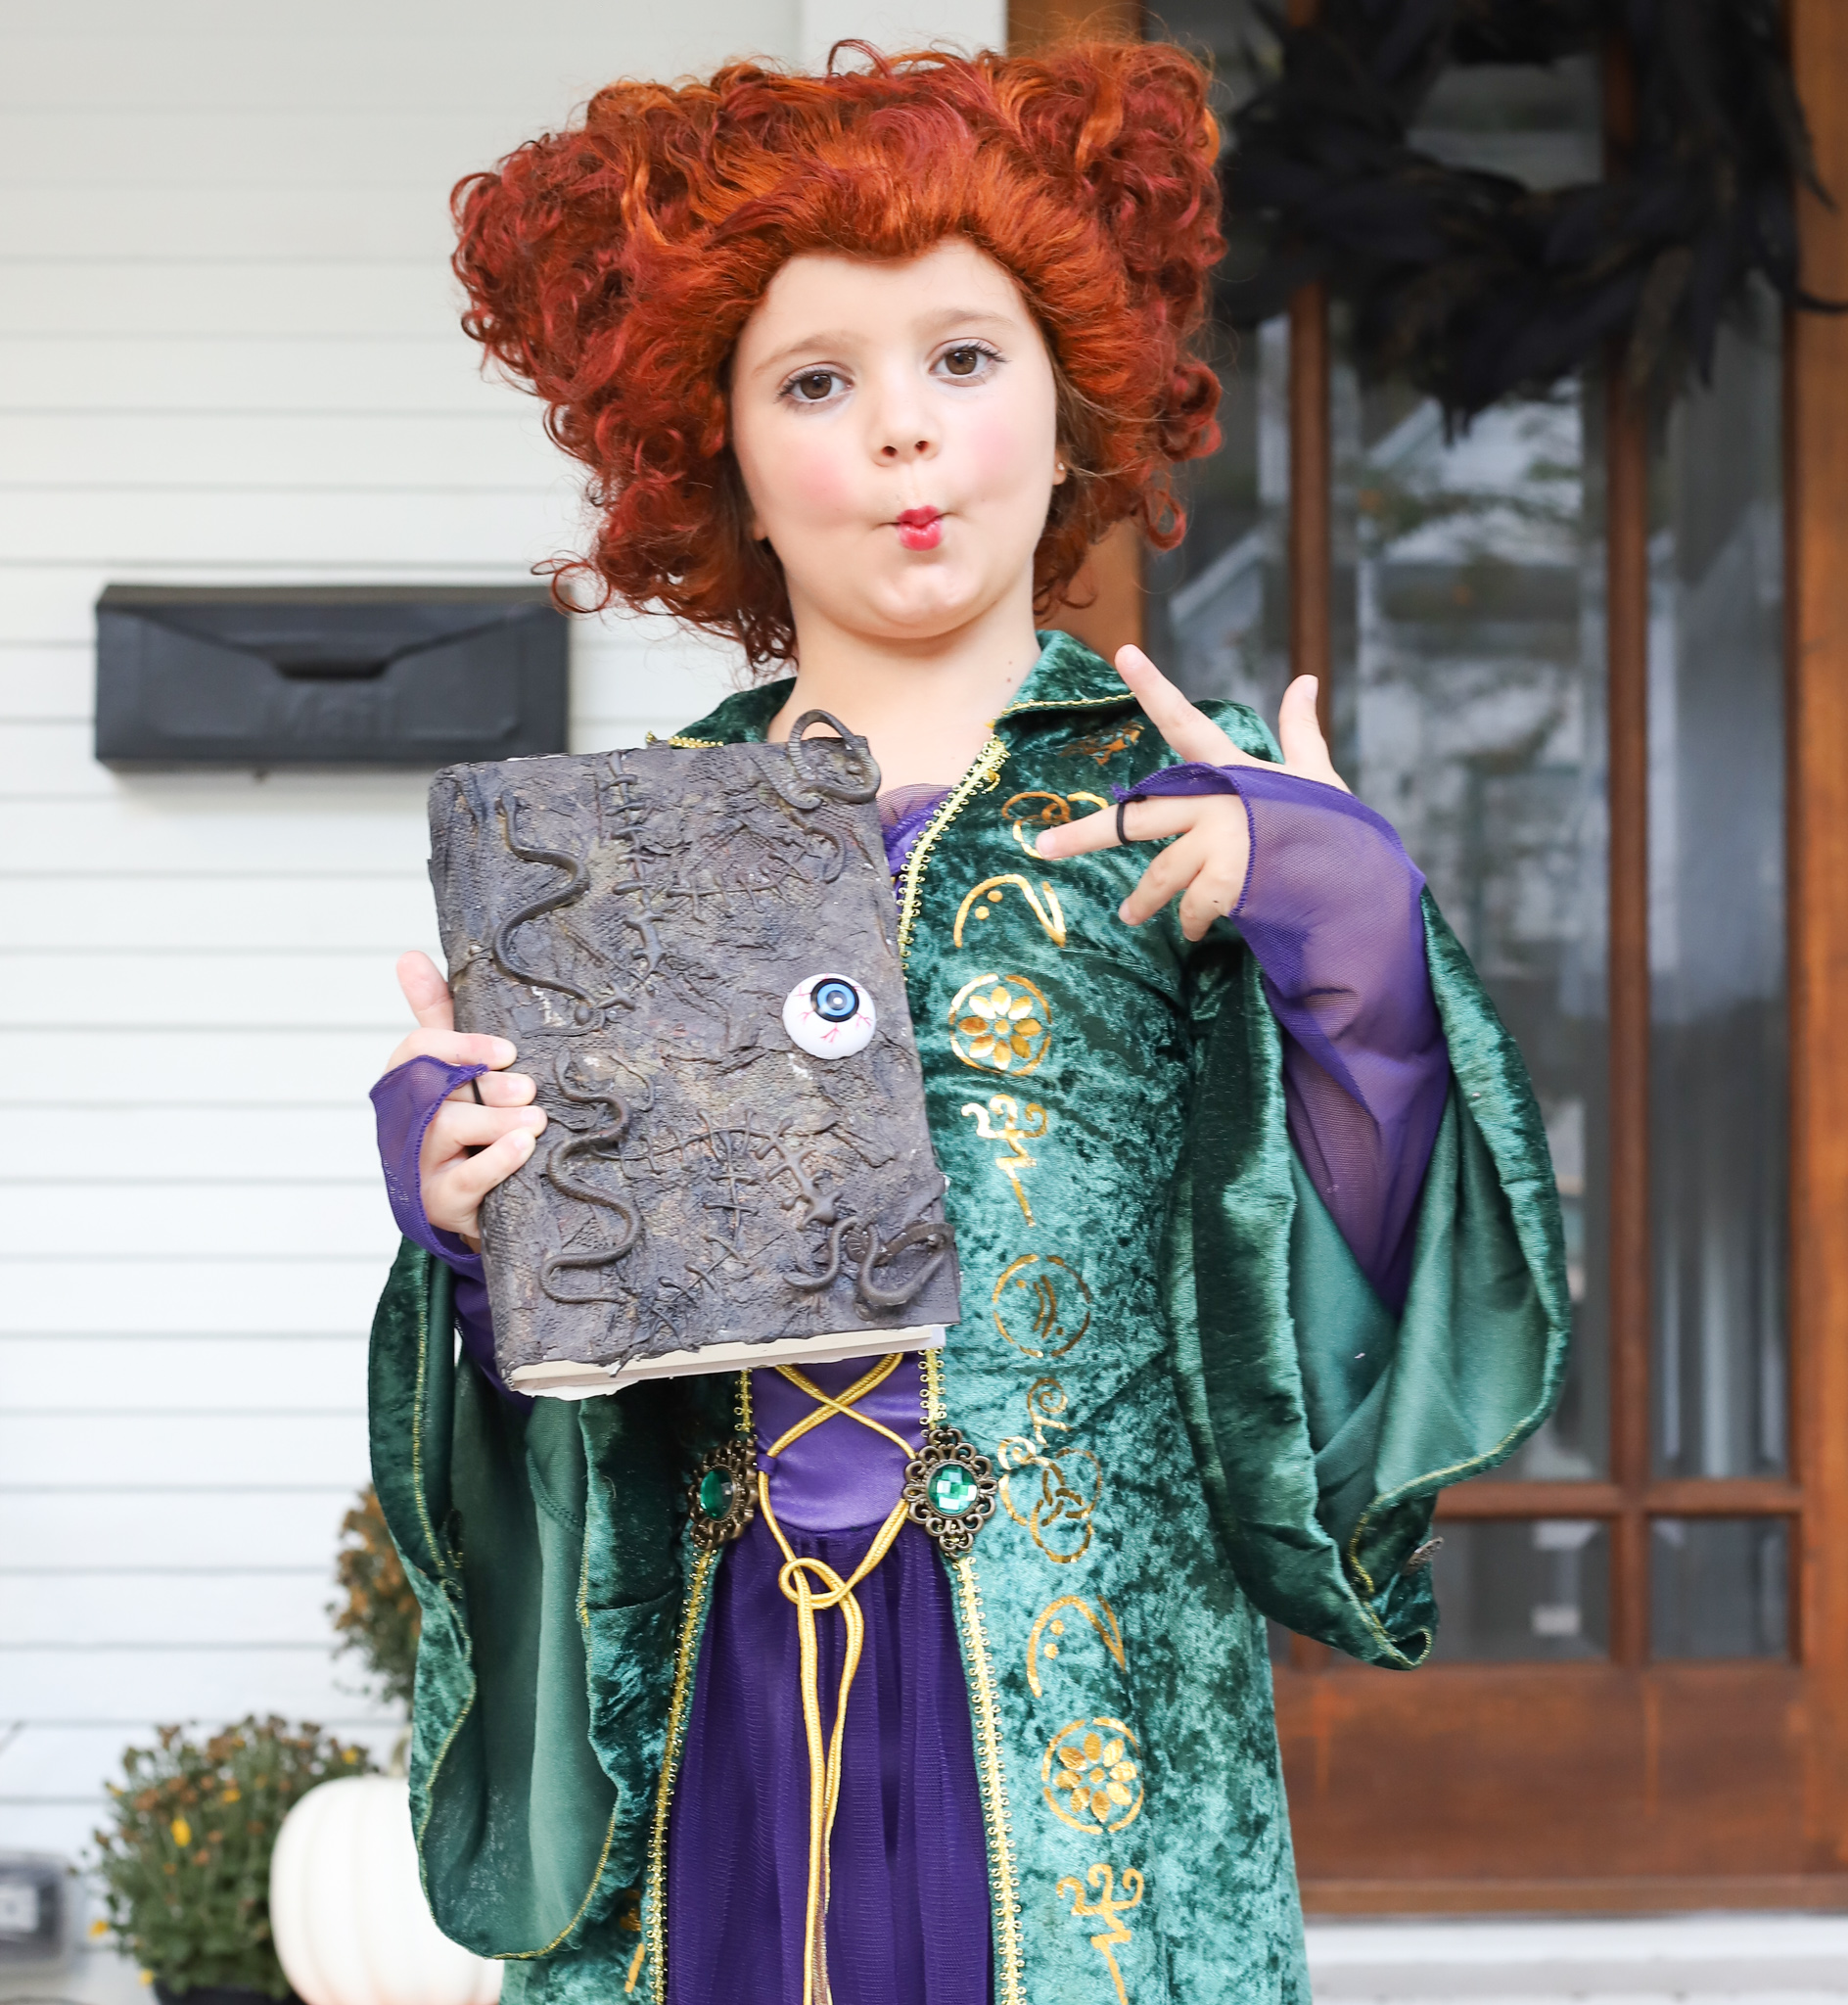 winifred Sanderson costume for girls